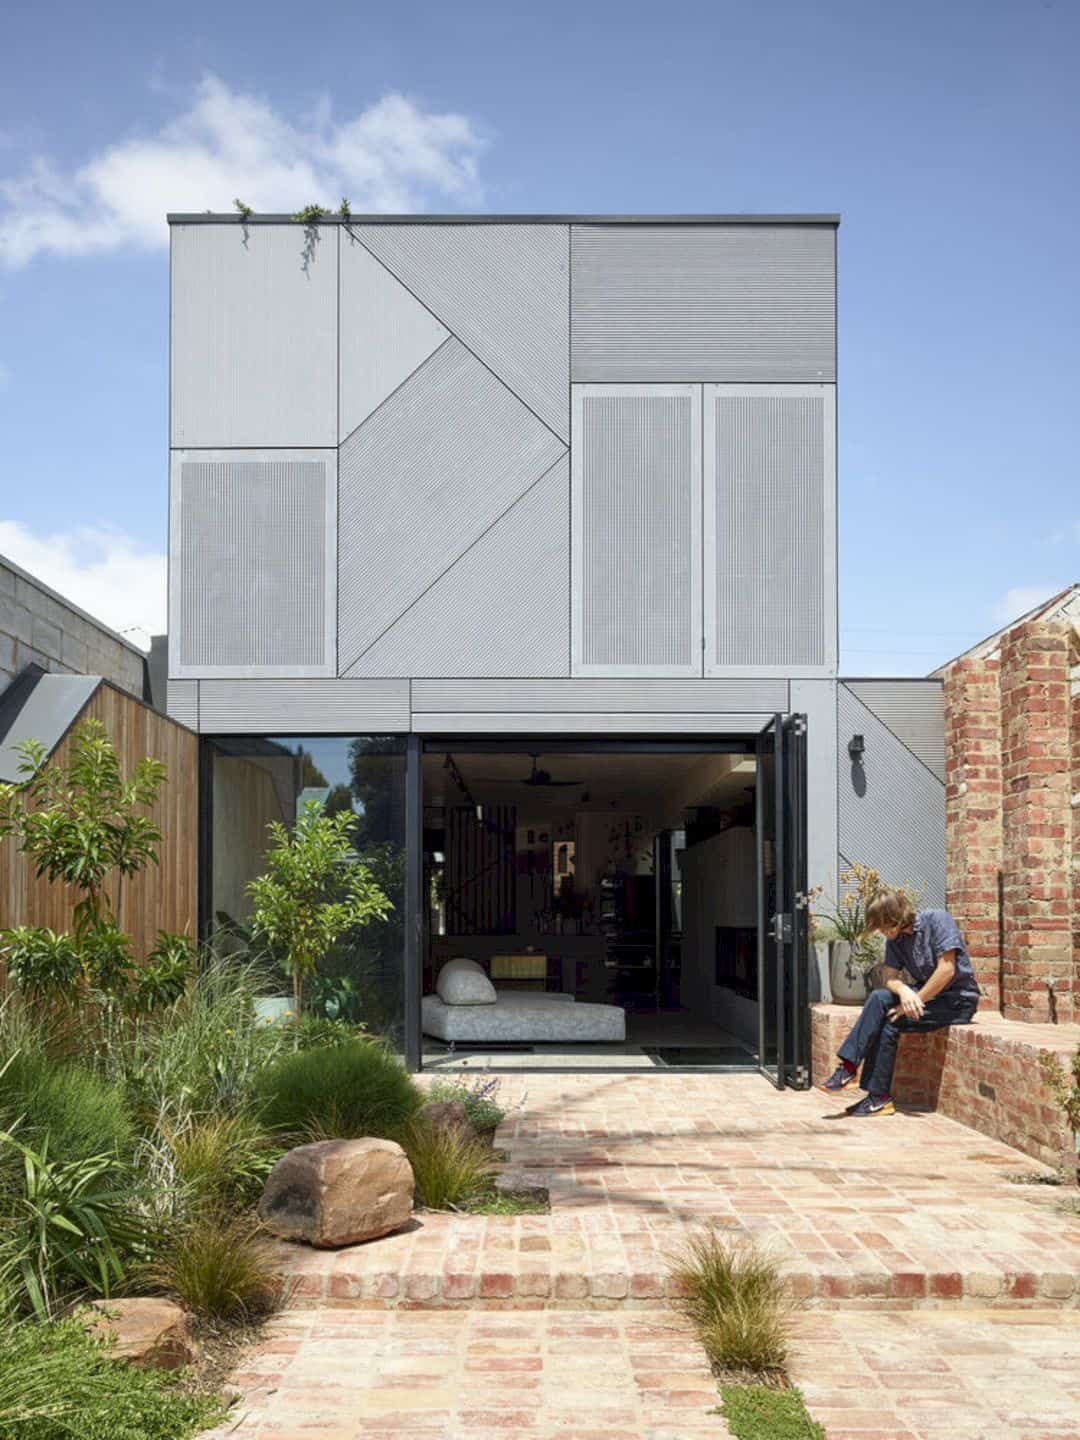 Union House A Fun Multi Level Home With Dramatic And Playful Features And Thoughtful Design In 2020 Level Homes House Melbourne House